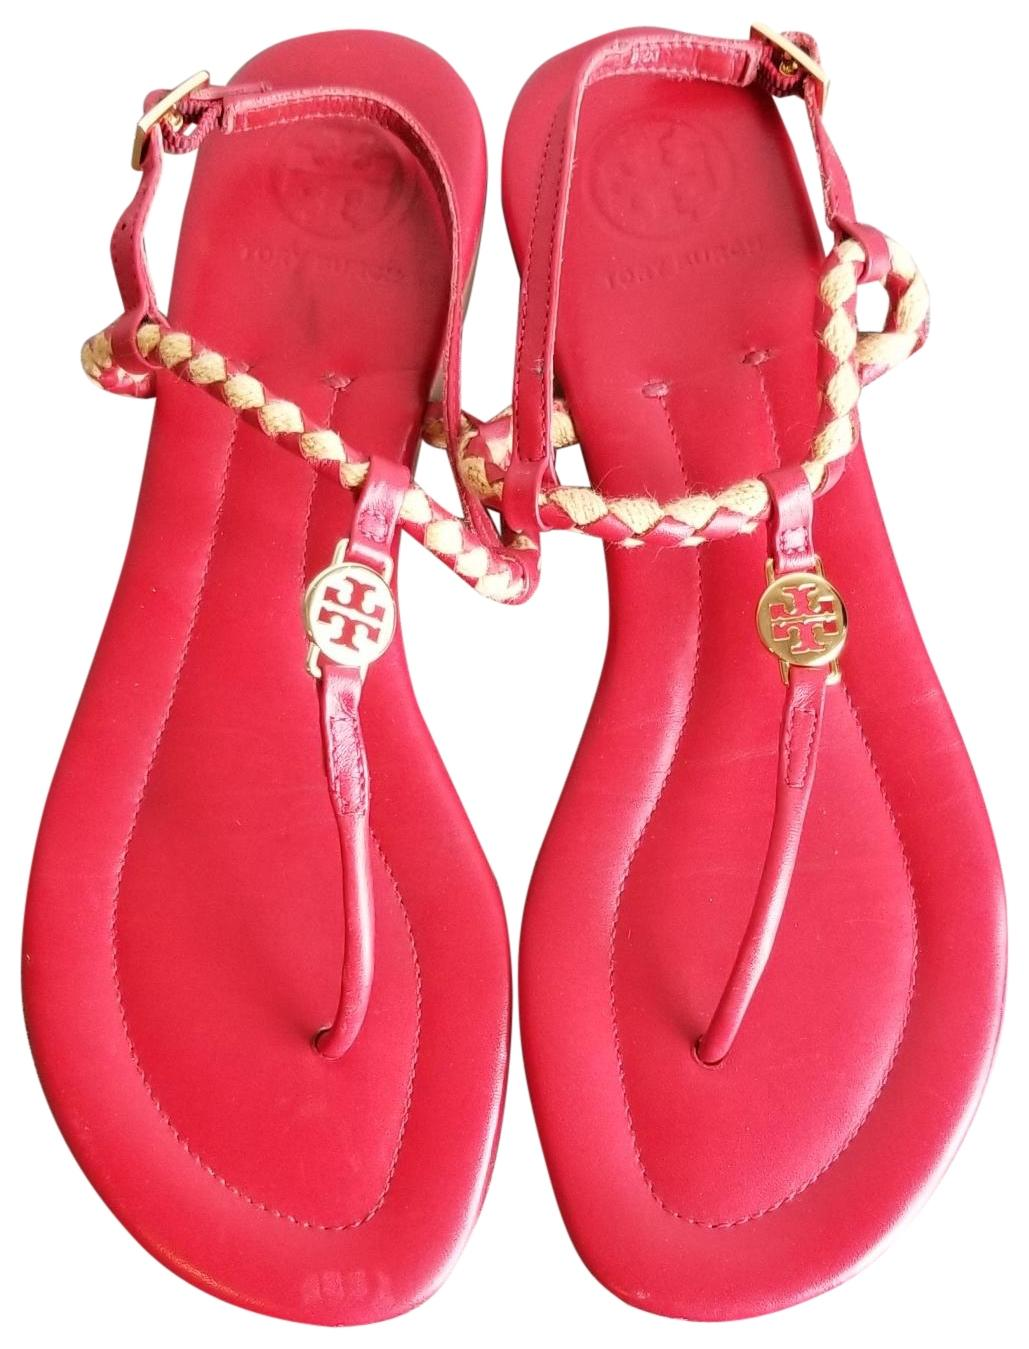 af4c23f72 Tory Tory Tory Burch Red Gold Sandals Size US 8.5 Regular (M